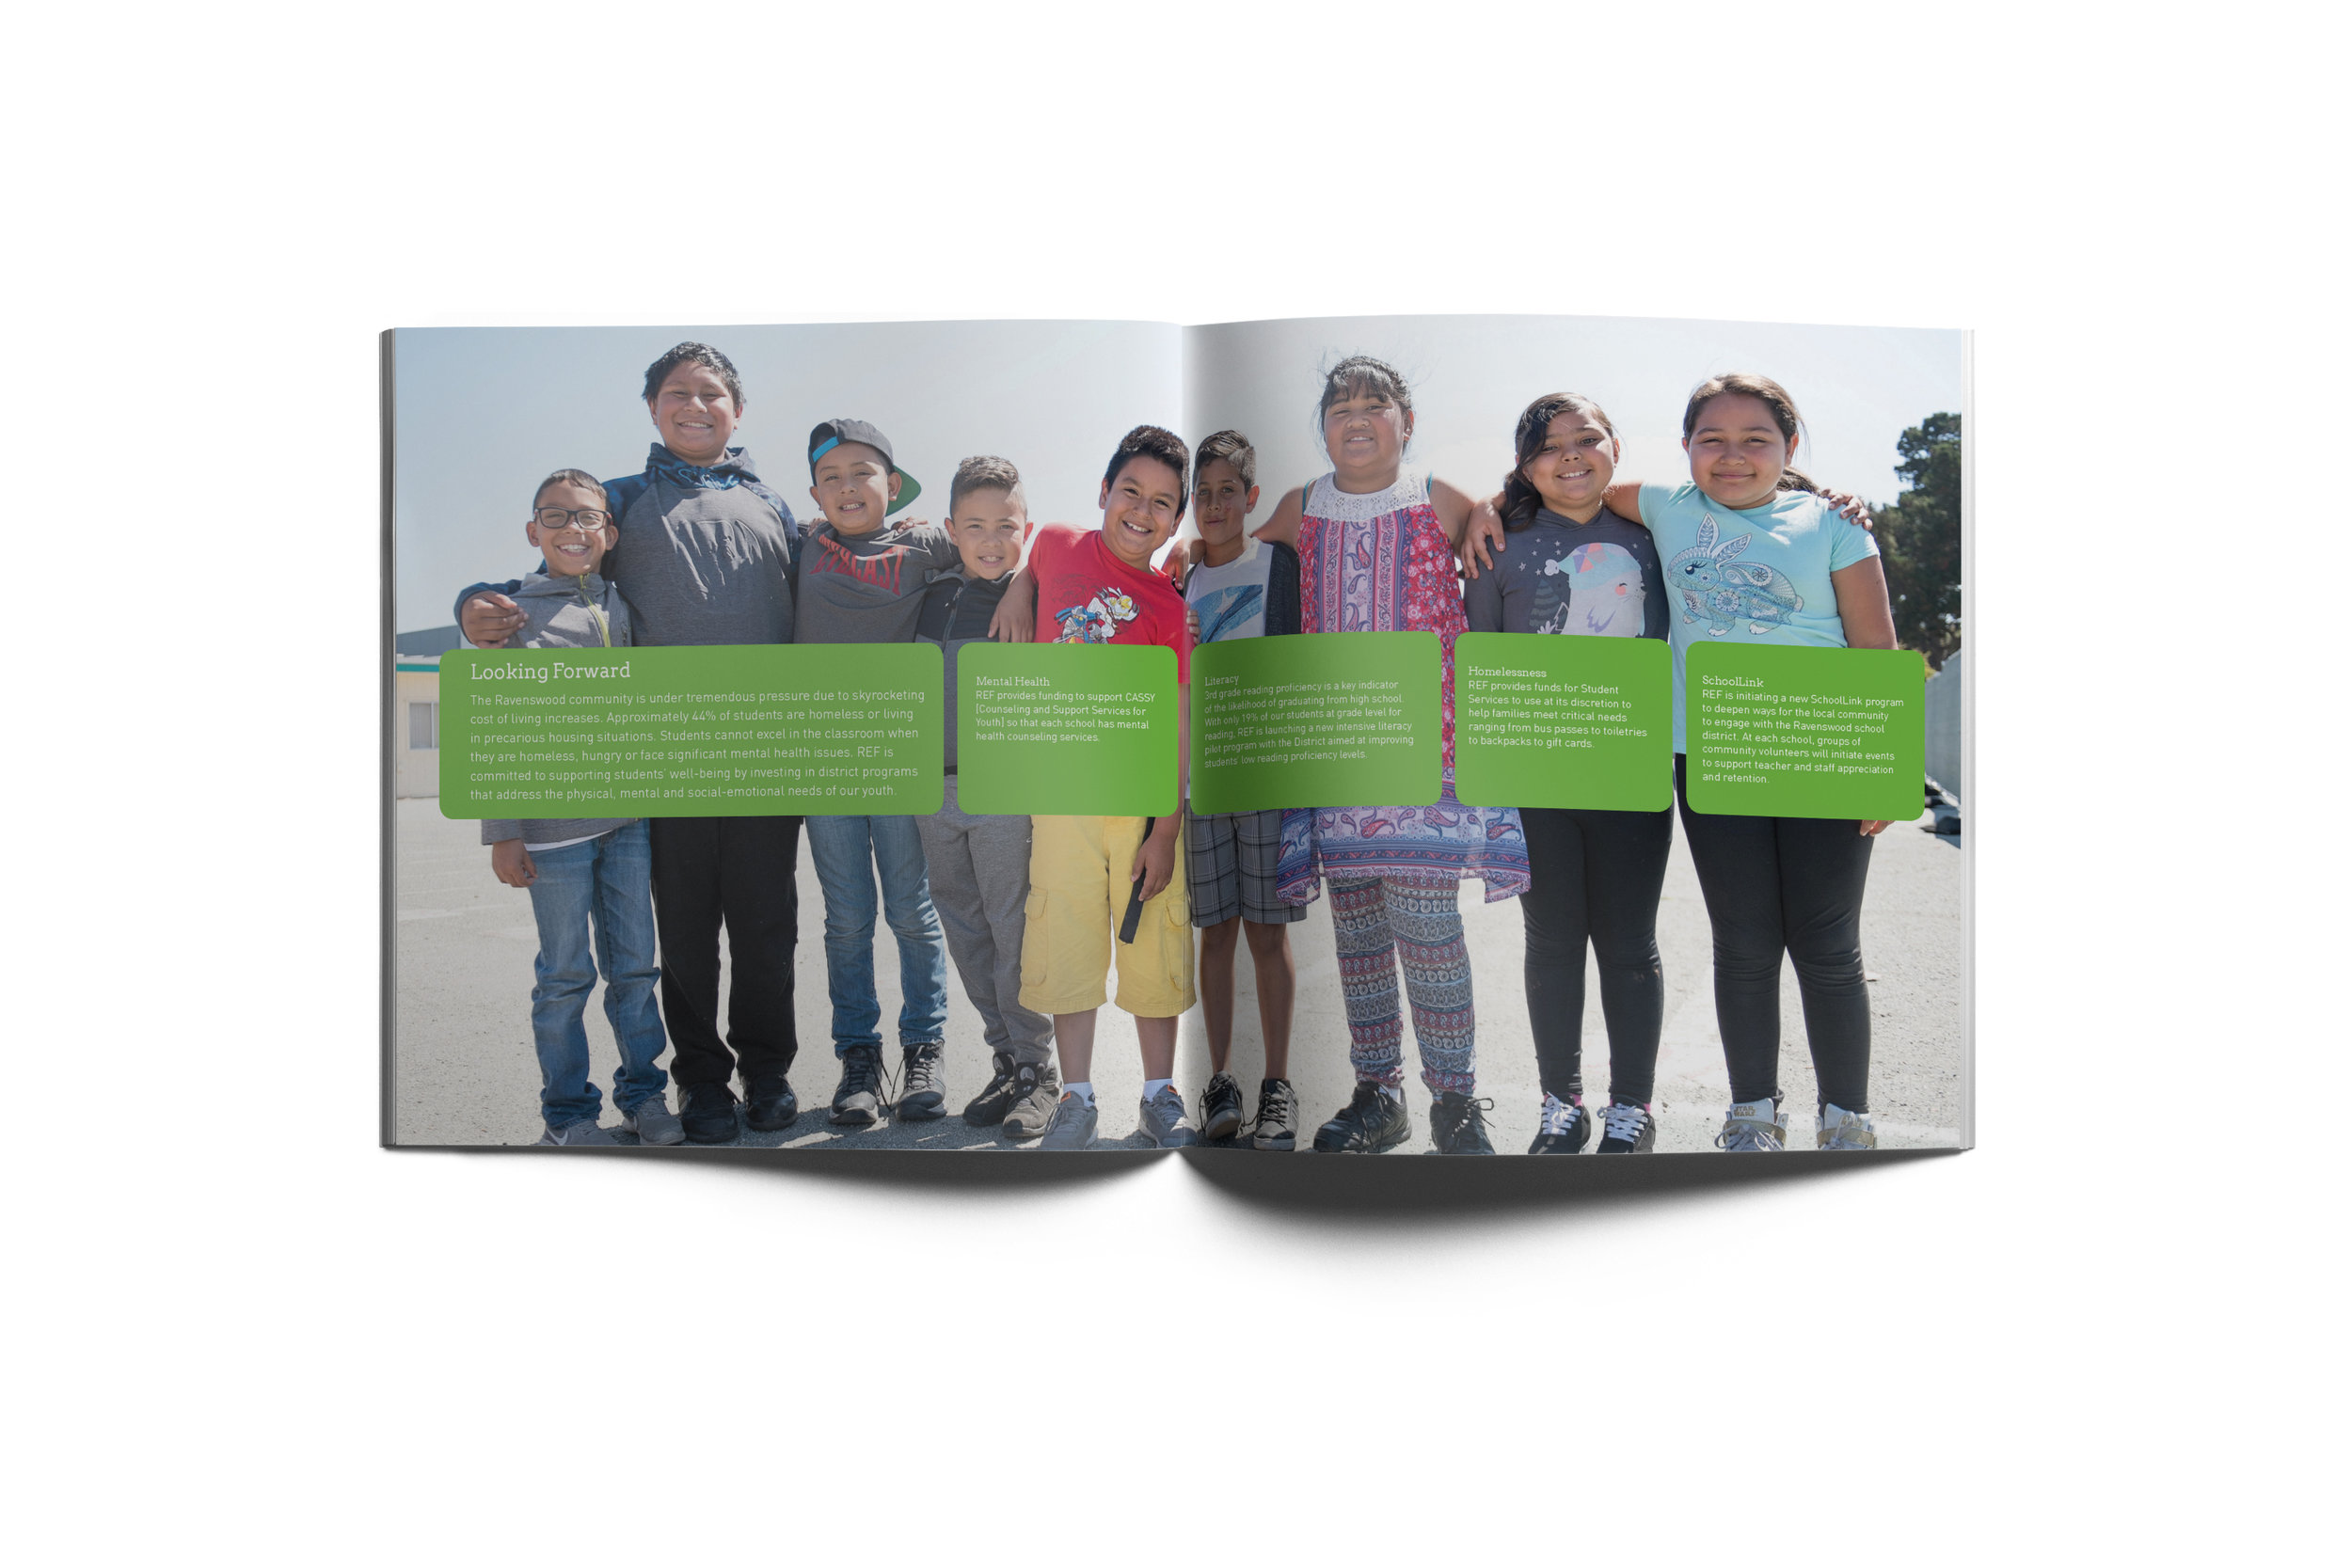 ravenswood education foundation_0005s_0001_annual report 10-11.jpg